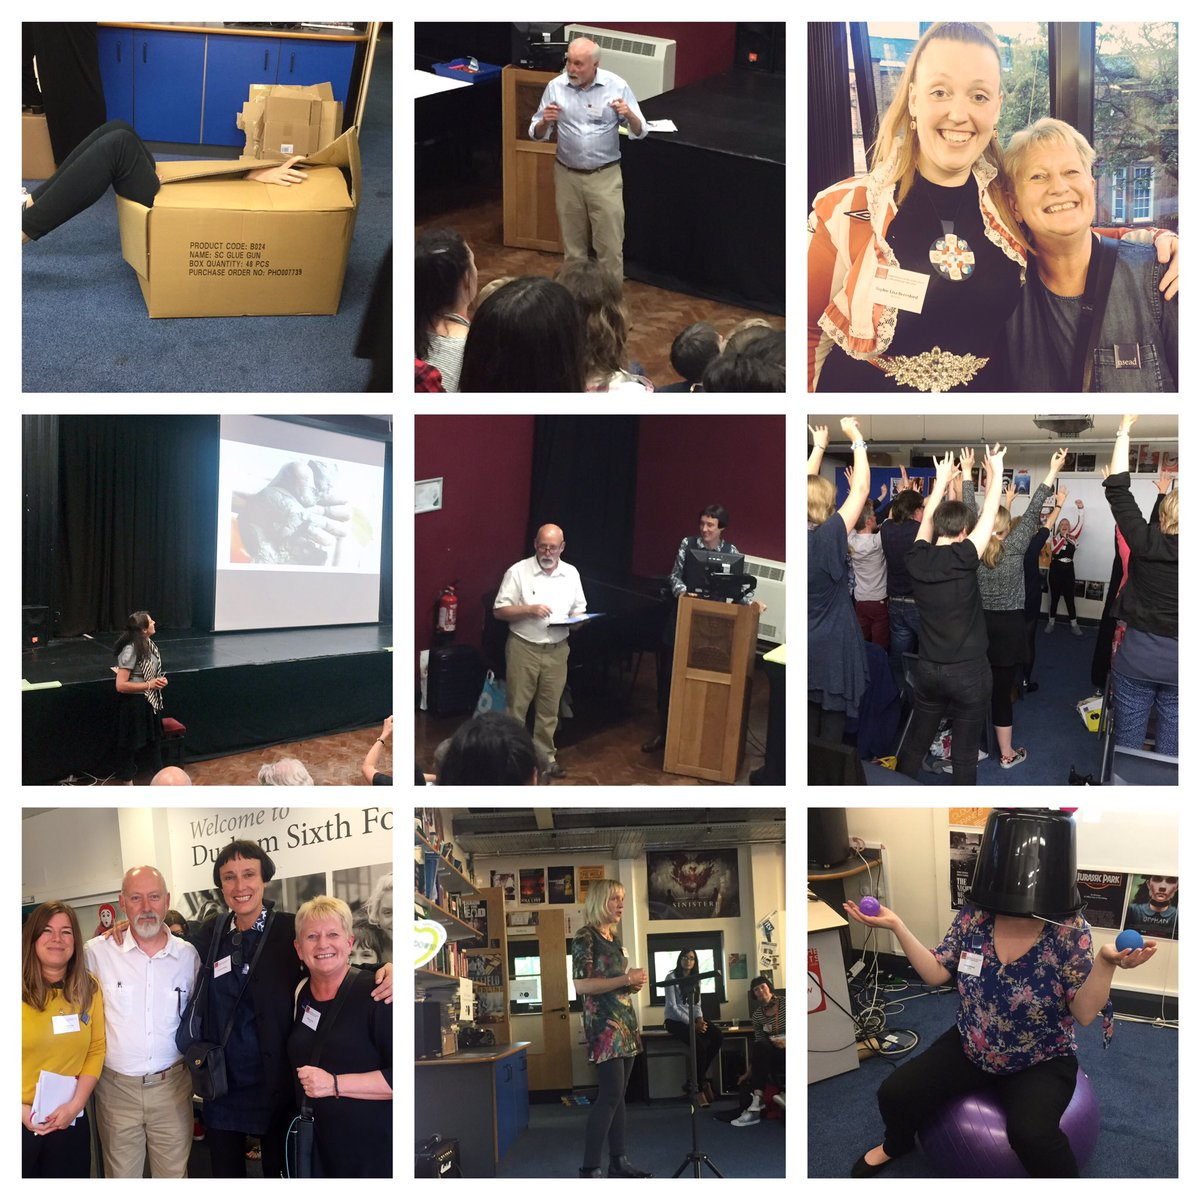 #artcubed @Jobaker9 a cube of images from a fantastic #nsead17 #conference. Hosted by @DSFCOfficial and @NSEAD1 #Magic<br>http://pic.twitter.com/az1a61lyzp